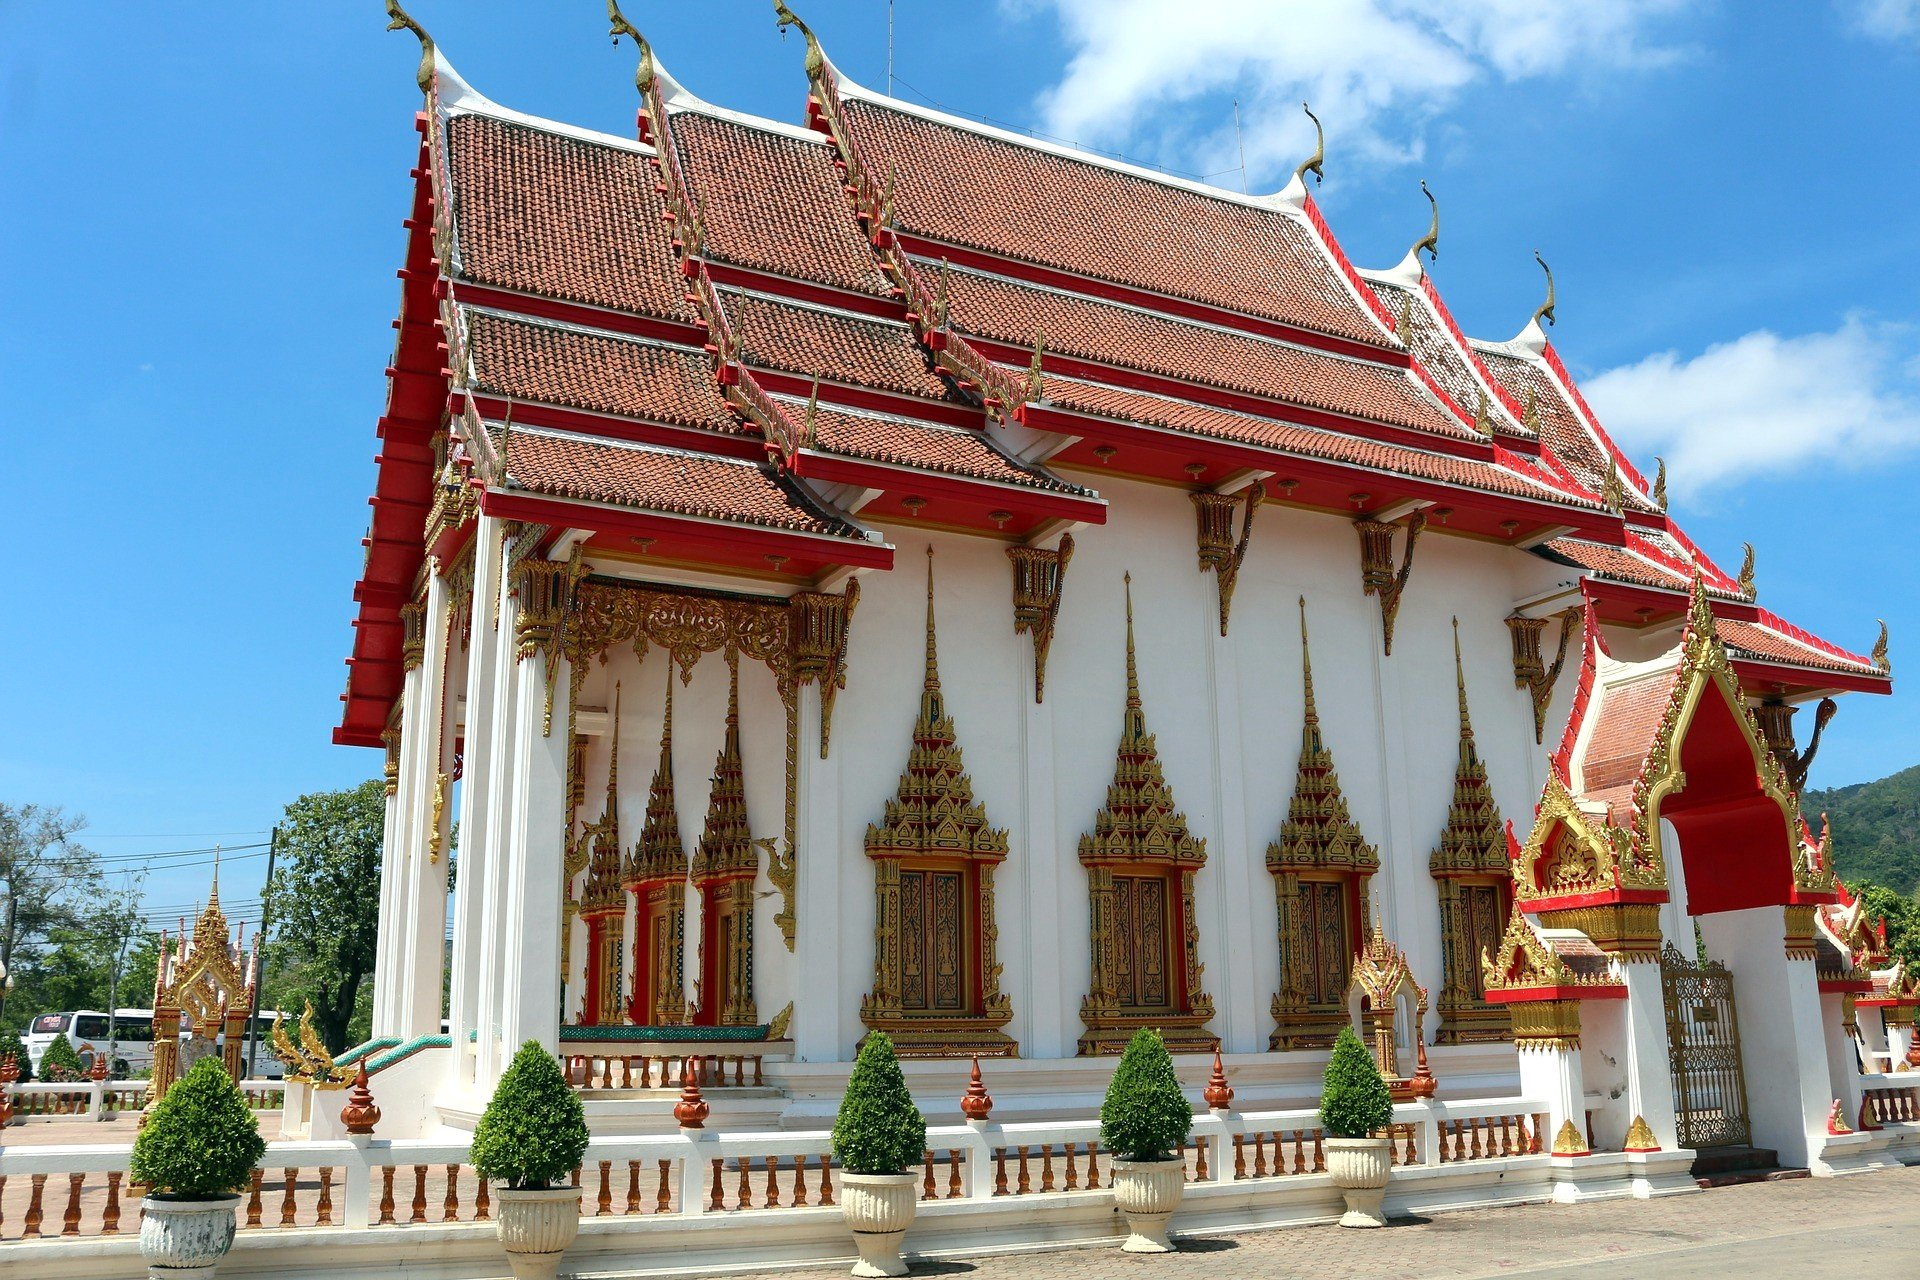 Wat Watchalong in Phuket